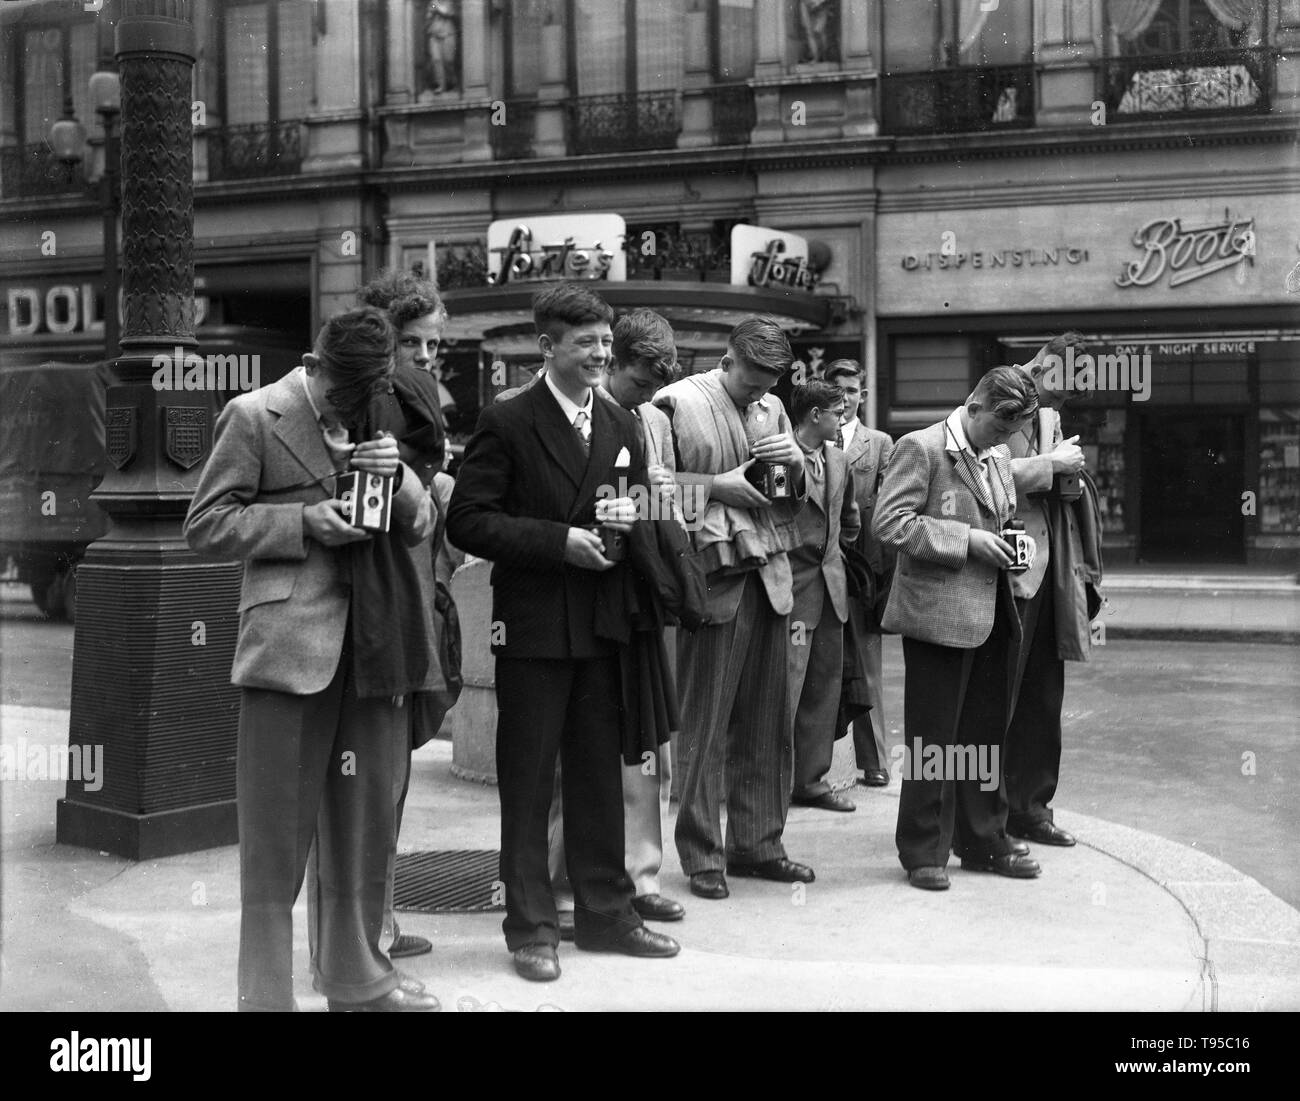 Smartly dressed young men teenagers taking photographs in Westminster, London, 1949 - Stock Image